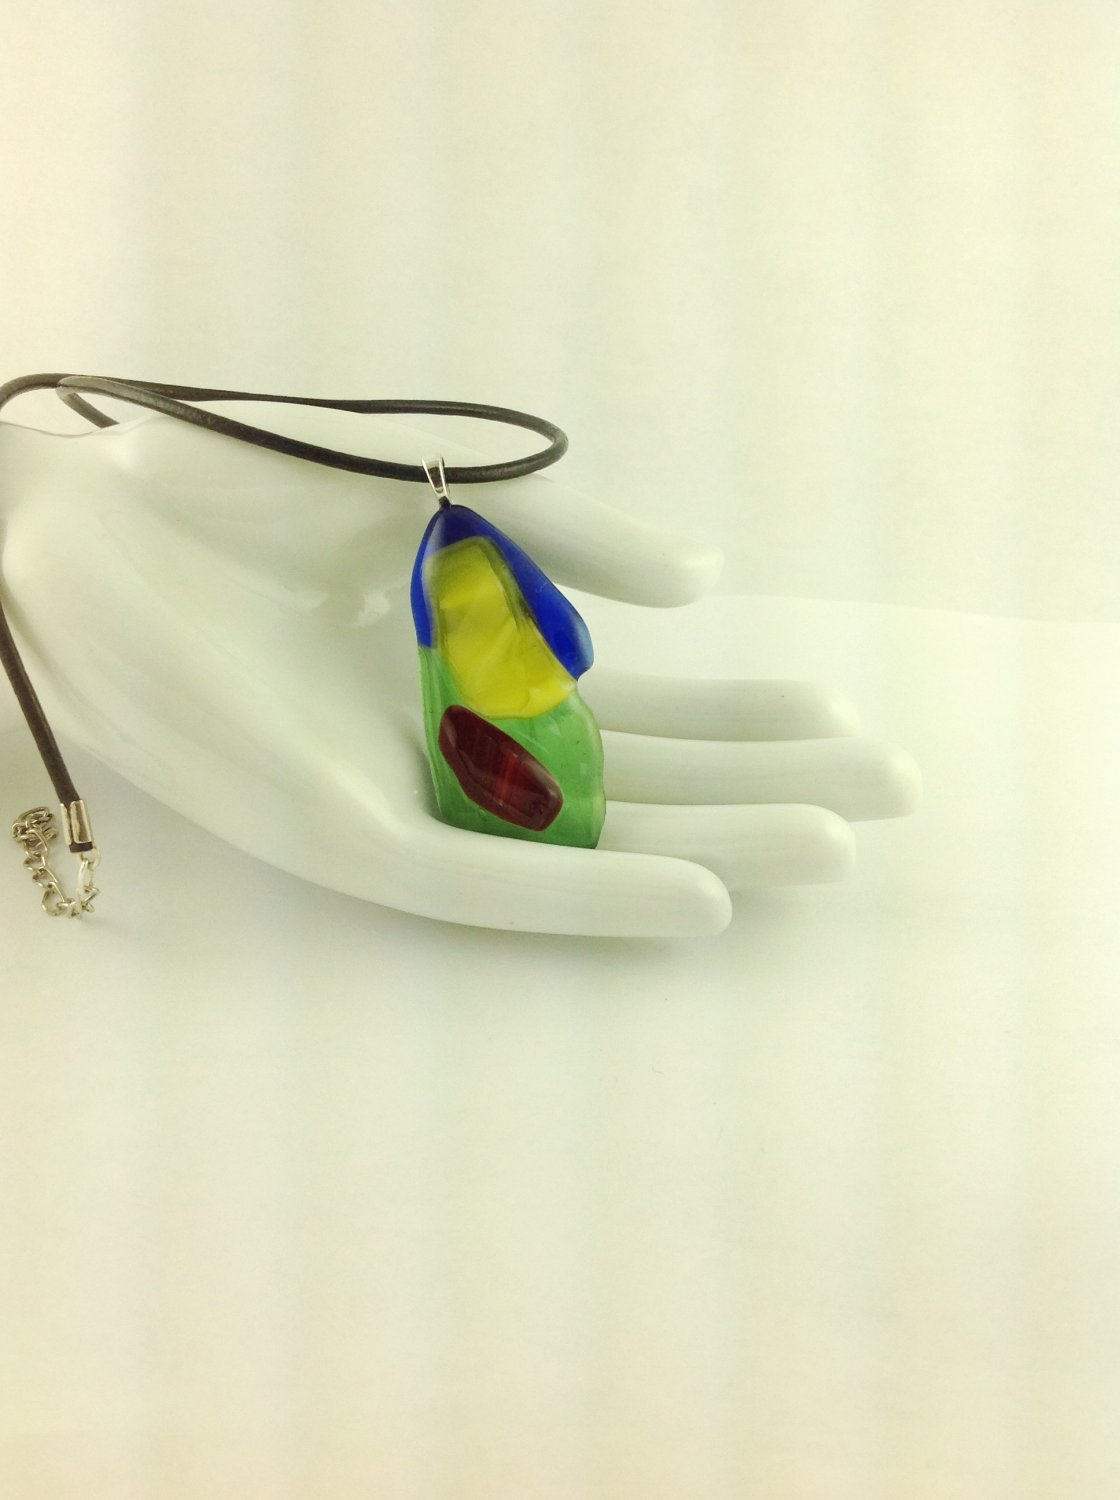 Rainbow Fused Glass Abstract Art Pendant on A  Leather Cord Necklace      Hand Crafted Jewelry